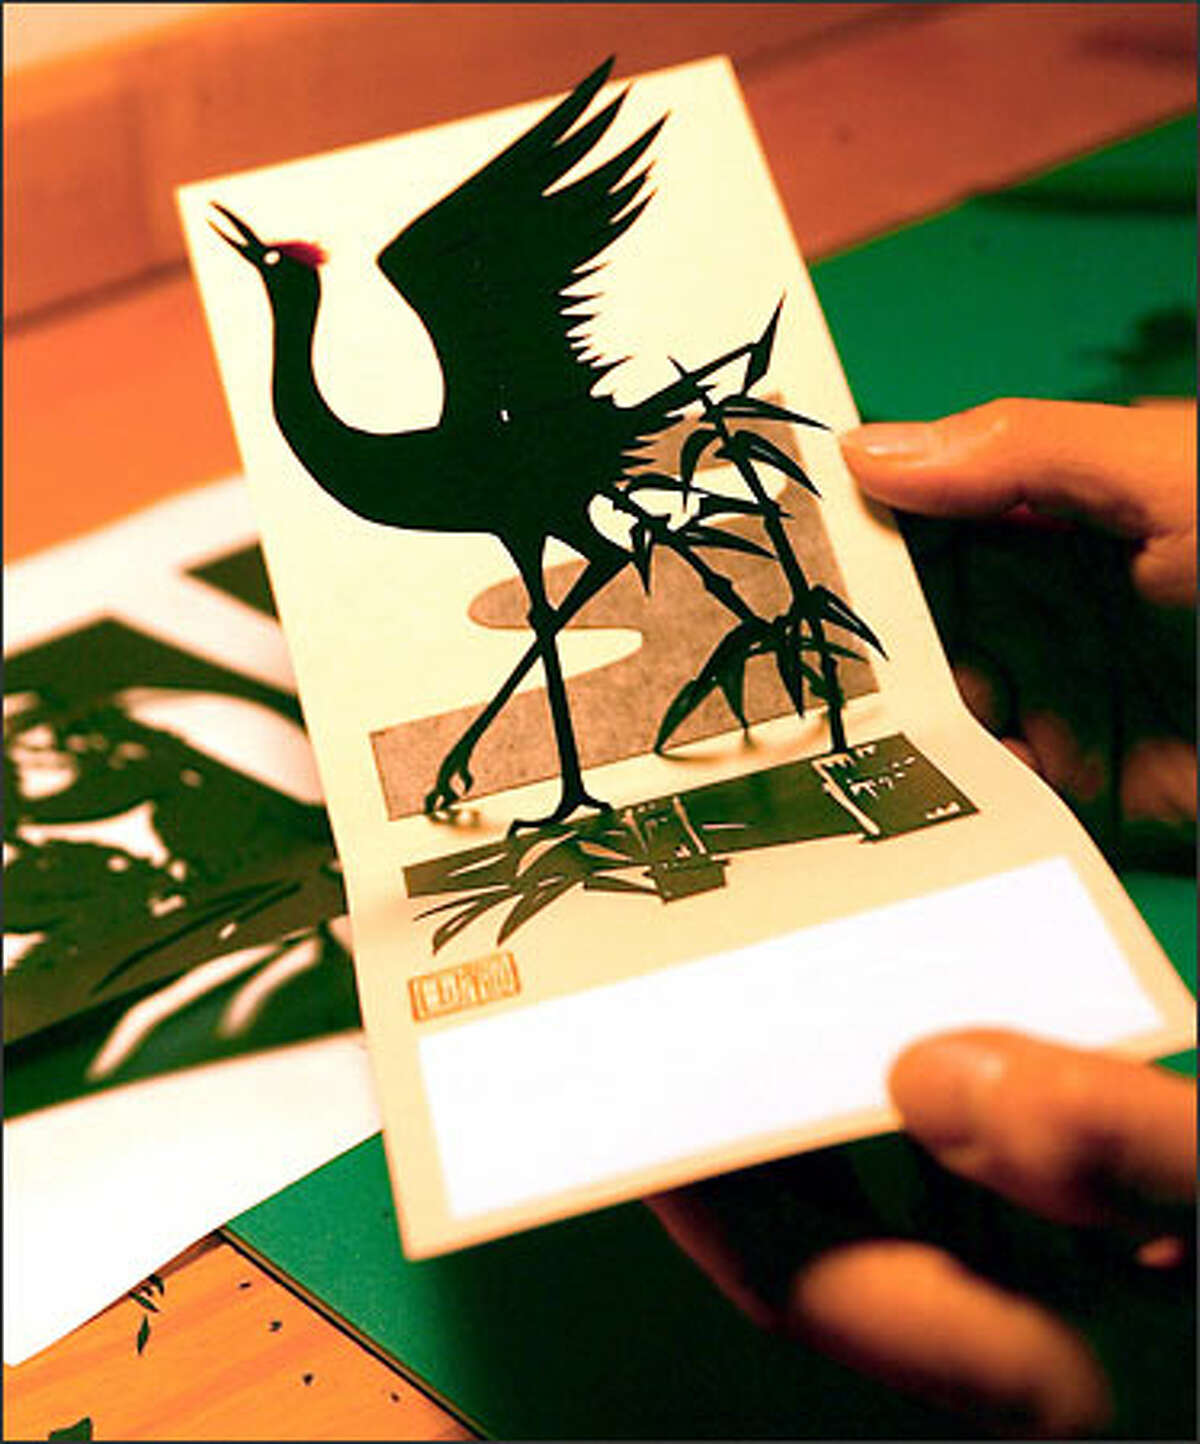 Paper artist Kyoko Niikuni opens one of her folding cards to show the crane inside. She makes Japanese torn- and cut-paper creations.